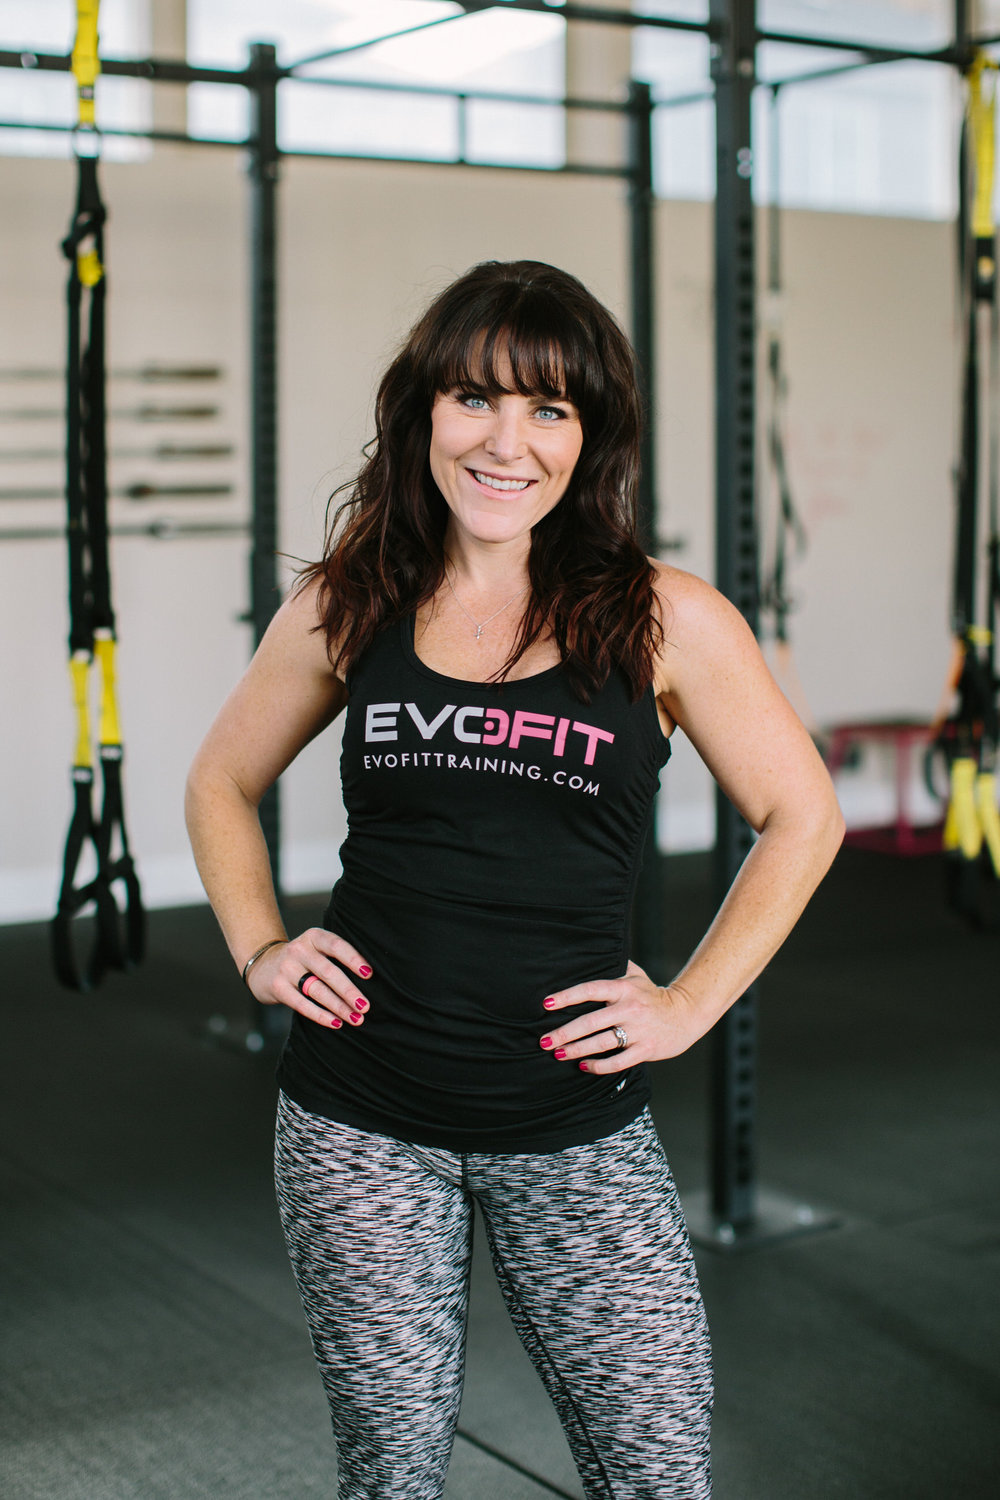 When Sue and I co-founded EvoFit, we were two women with the same challenge: fitting high-quality training into our packed schedules. We didn't have time to juggle memberships at multiple studios and we wanted big results from our workouts.   Passionate about client results, I'm certified by AFAA, NESTA, BootyBarre, FIT4MOM, Seattle Kettlebell Club, and TRX. As a professional, I've moved from group and private instruction in customized women's fitness facilities to my own private training studio before co-founding EvoFit. I like my classes fast, loud, and challenging – building inside and out strength.  As a coach and a mom I know this: Each of us needs a little (sometimes a big) push to realize our true potential. We are so much stronger than we give ourselves credit for. When you unlock that truth the possibilities are endless in or out of the gym.